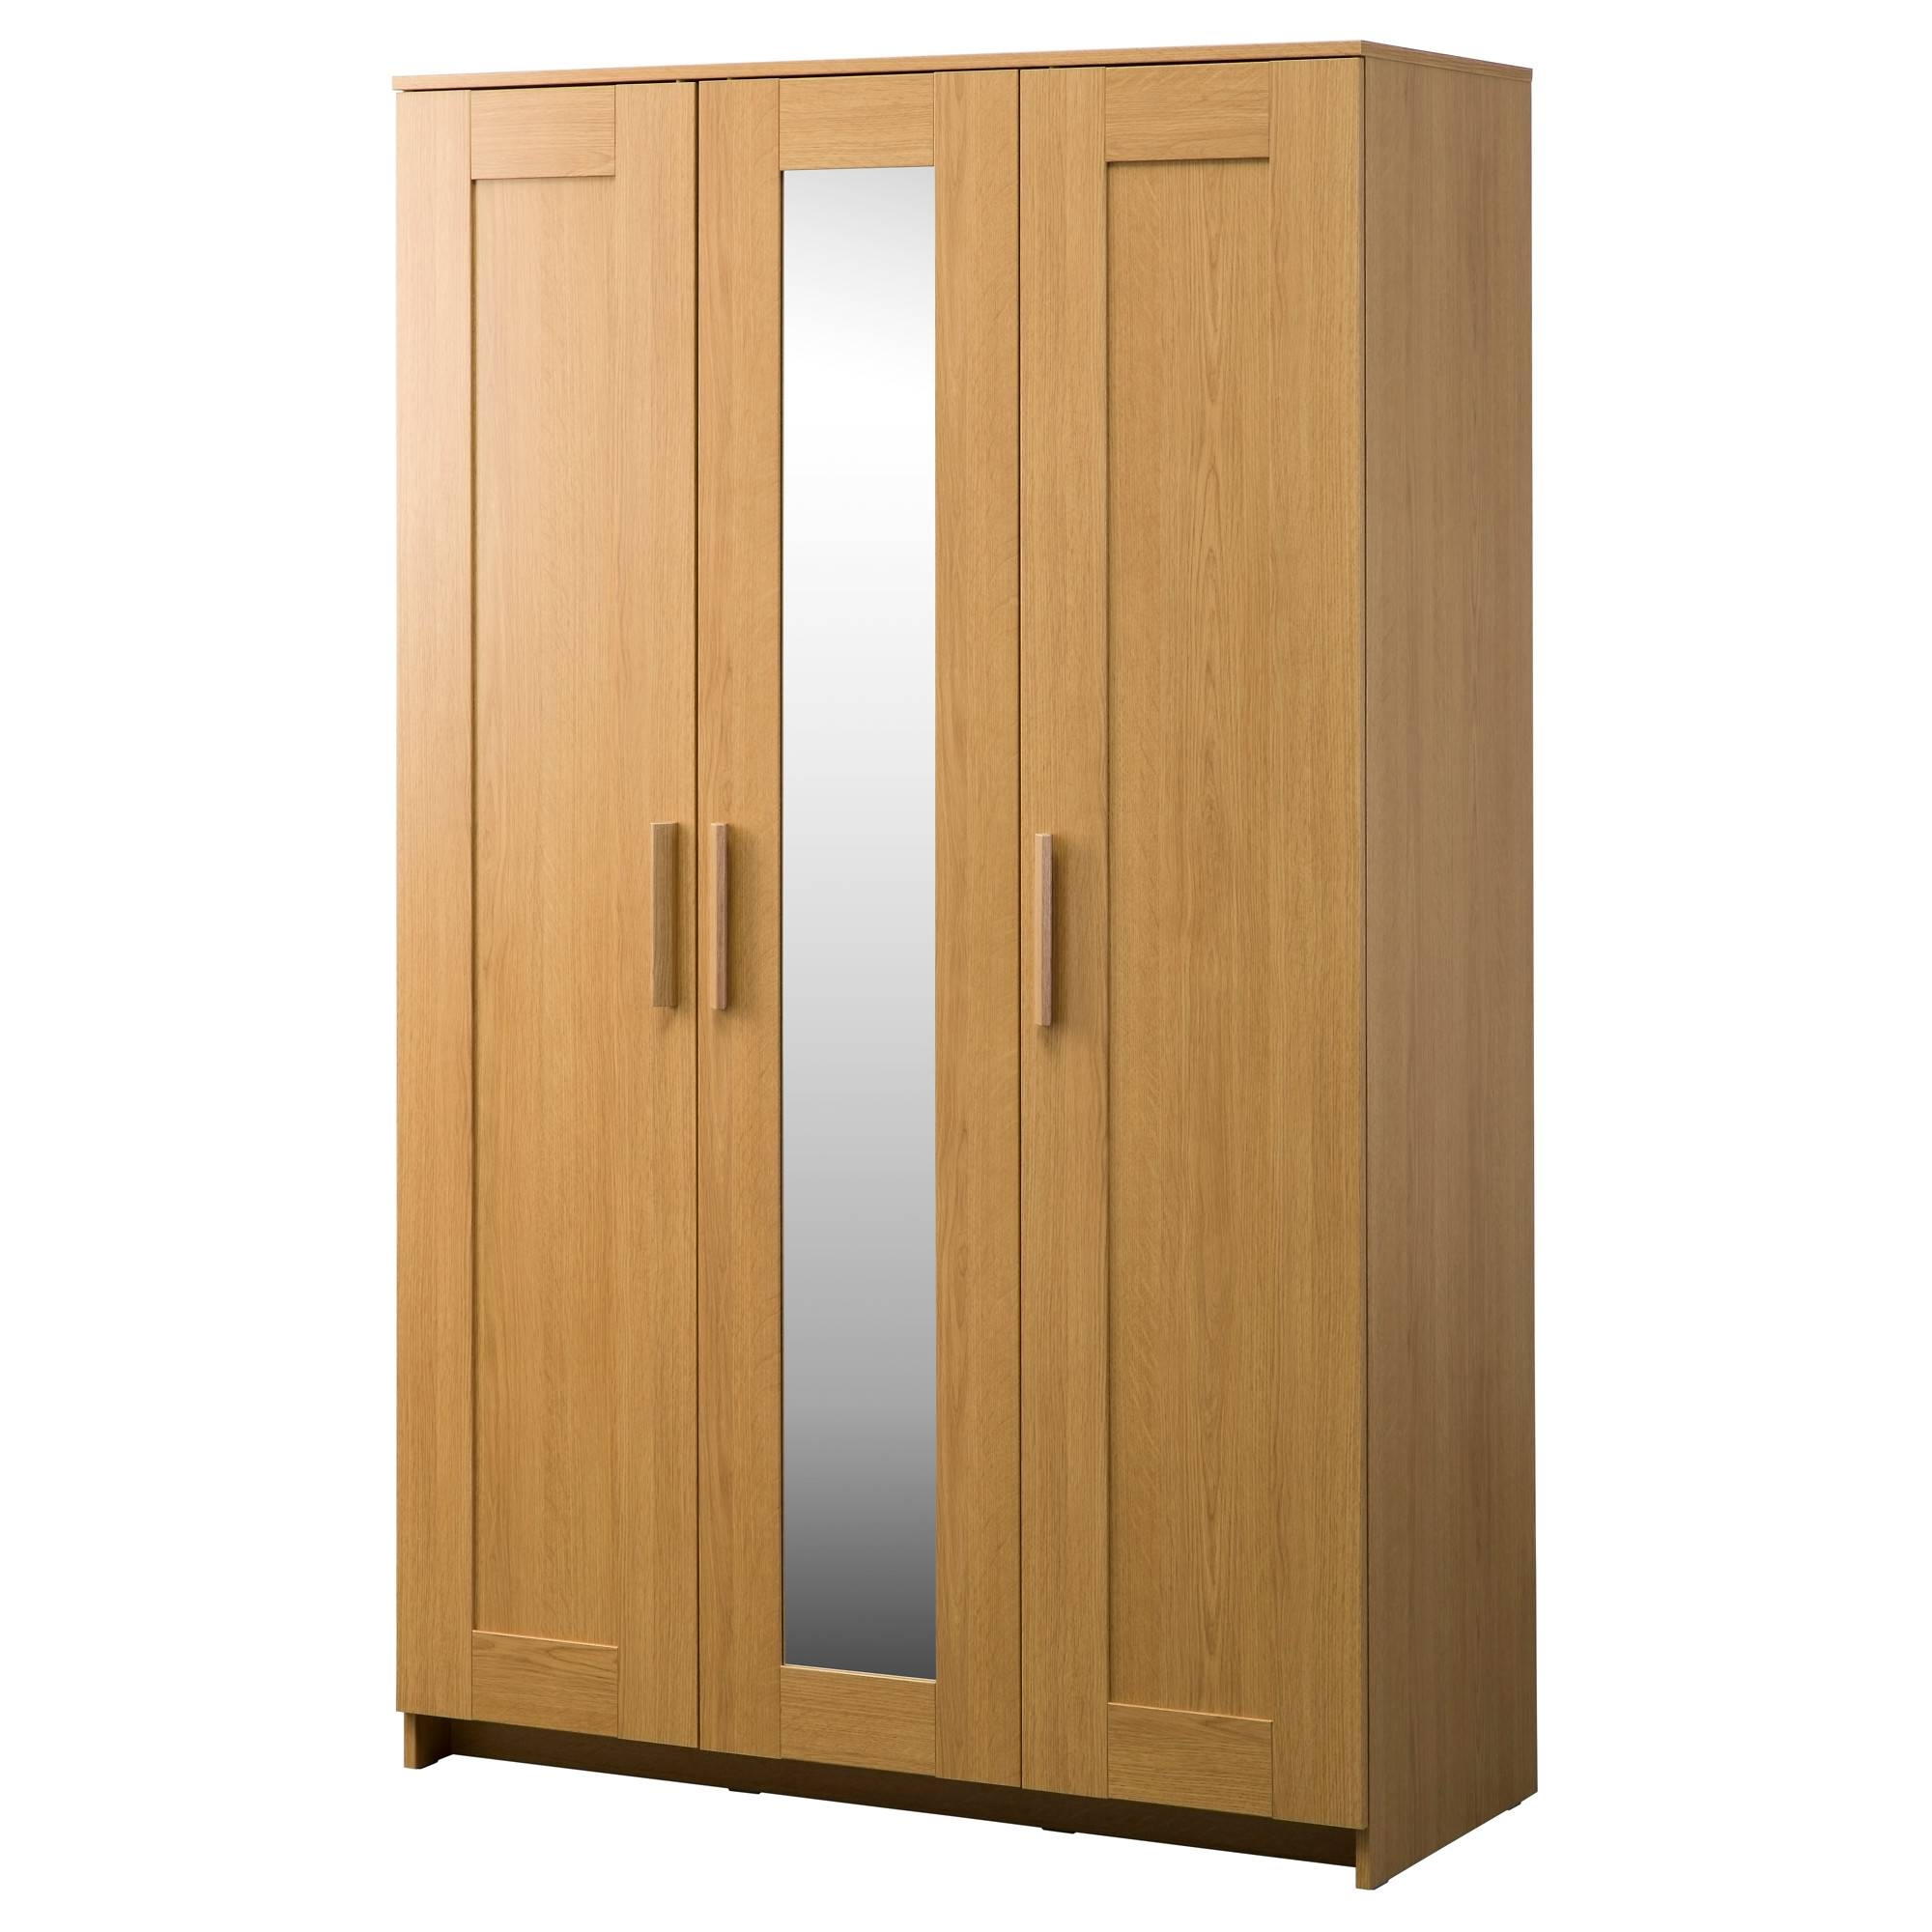 Wardrobes | Ikea in Oak Wardrobe With Drawers and Shelves (Image 30 of 30)